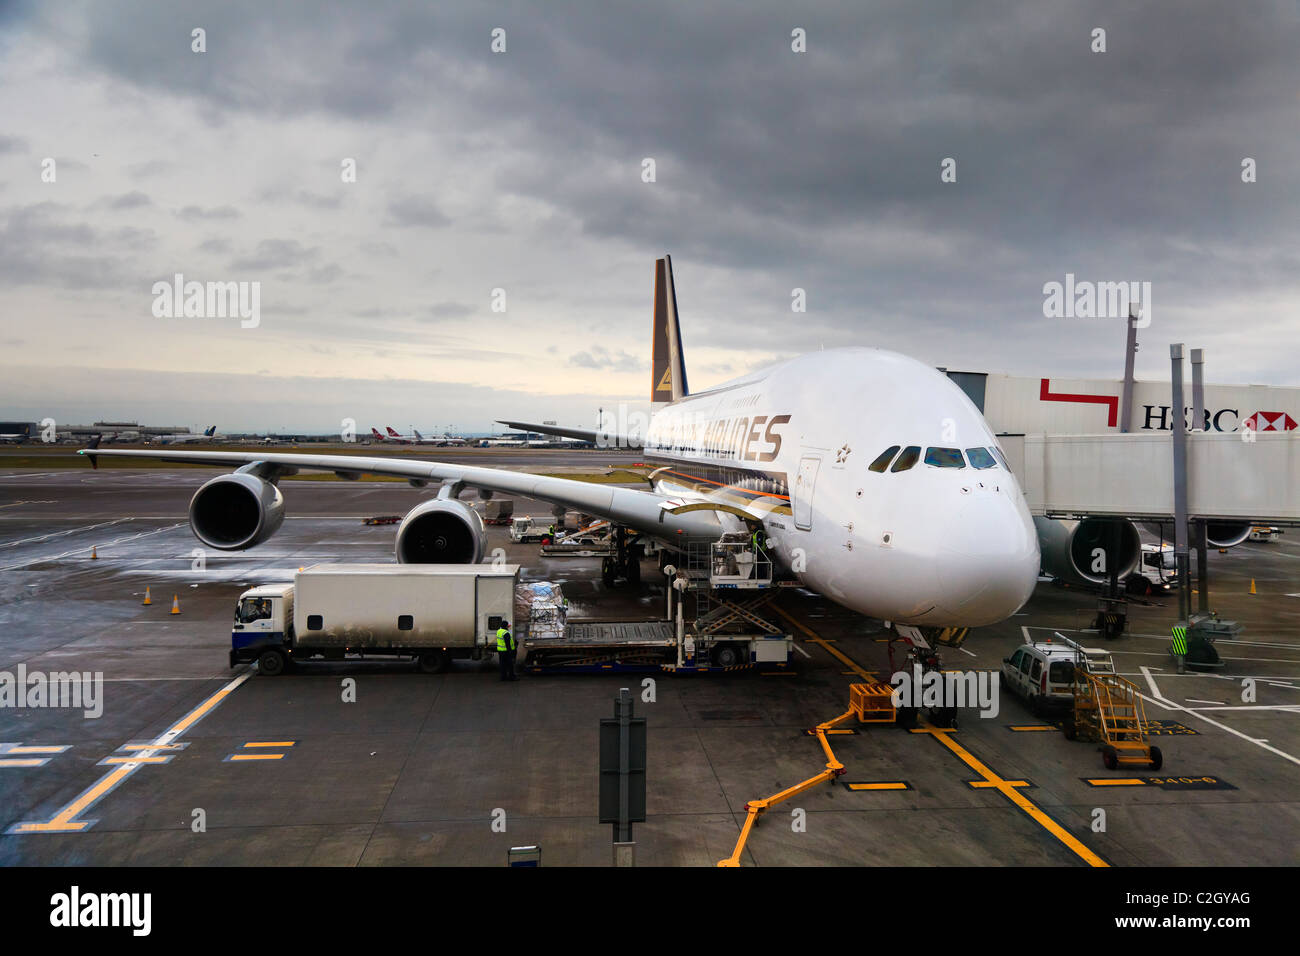 England, London, Heathrow Airport, Airbus A380 on the runway - Stock Image